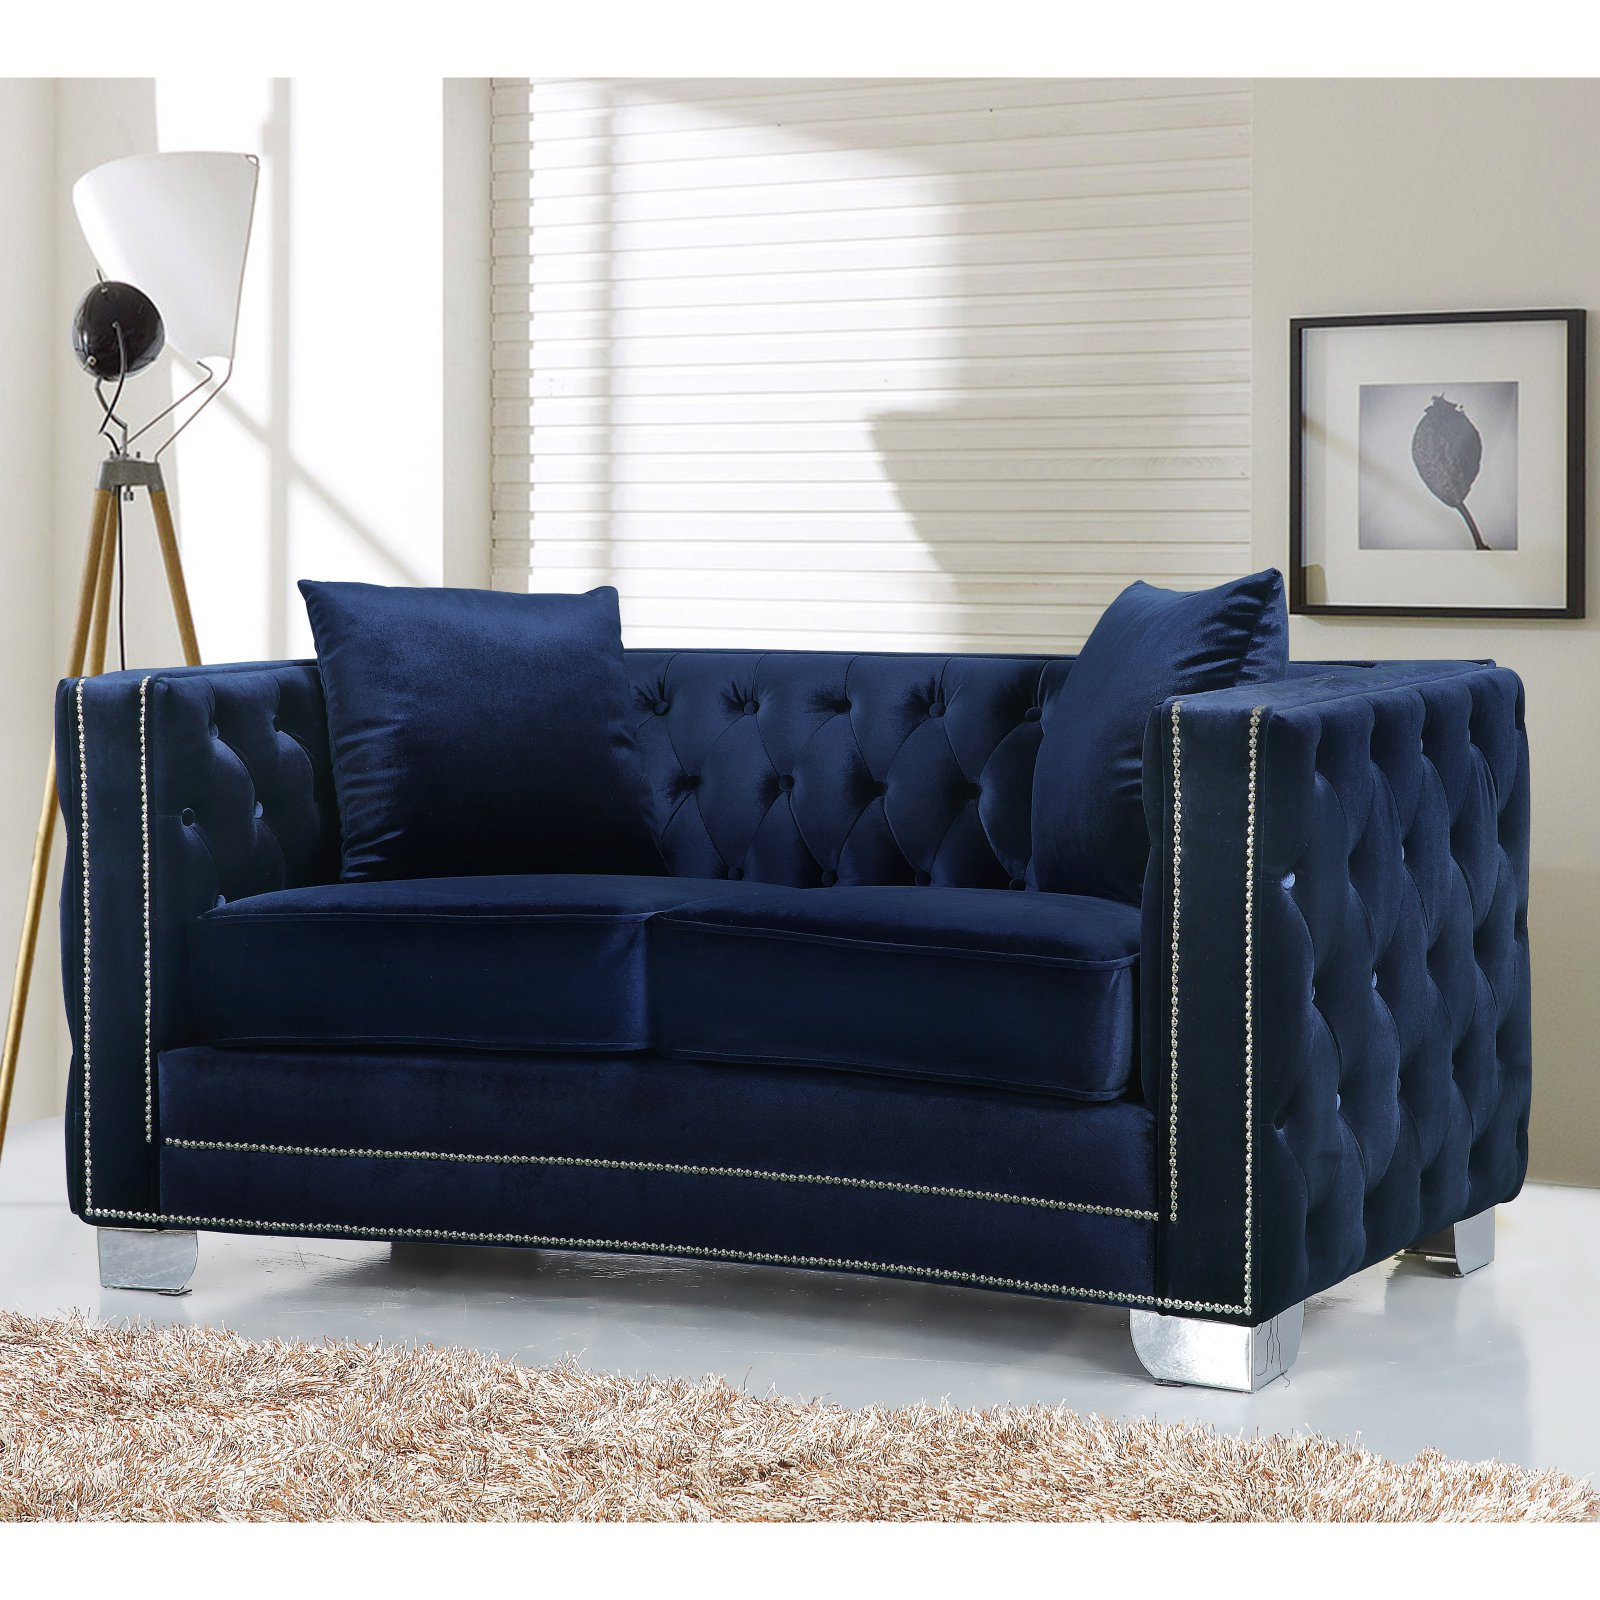 Meridian Furniture Inc Reese Loveseat with Toss Pillows